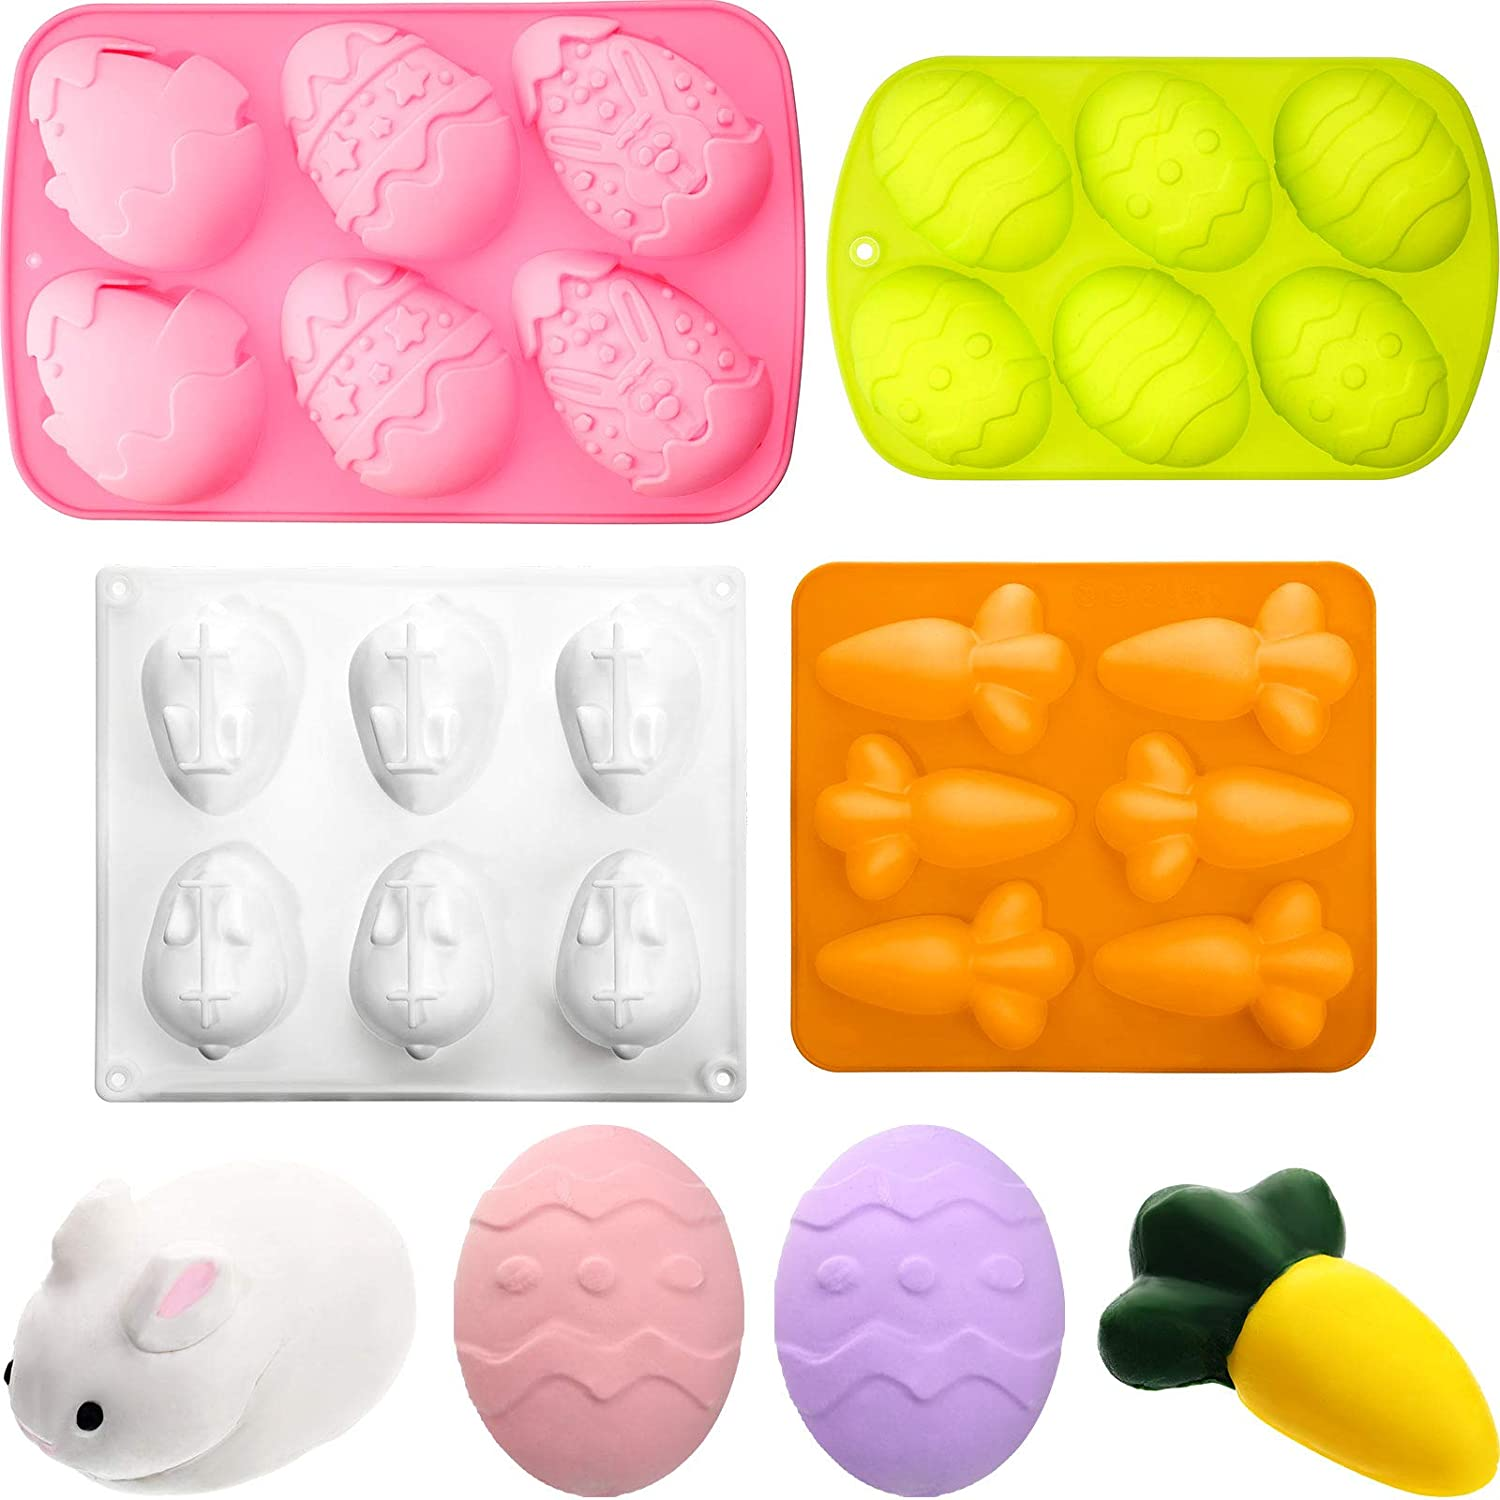 4 Pieces Easter Egg Chocolate Candy Molds Rabbit Bunny Shaped Silicone Mold Carrot Silicone Mold Easter Baking Cake Mold for DIY Cake Chocolate Jelly Desserts Ice Soap